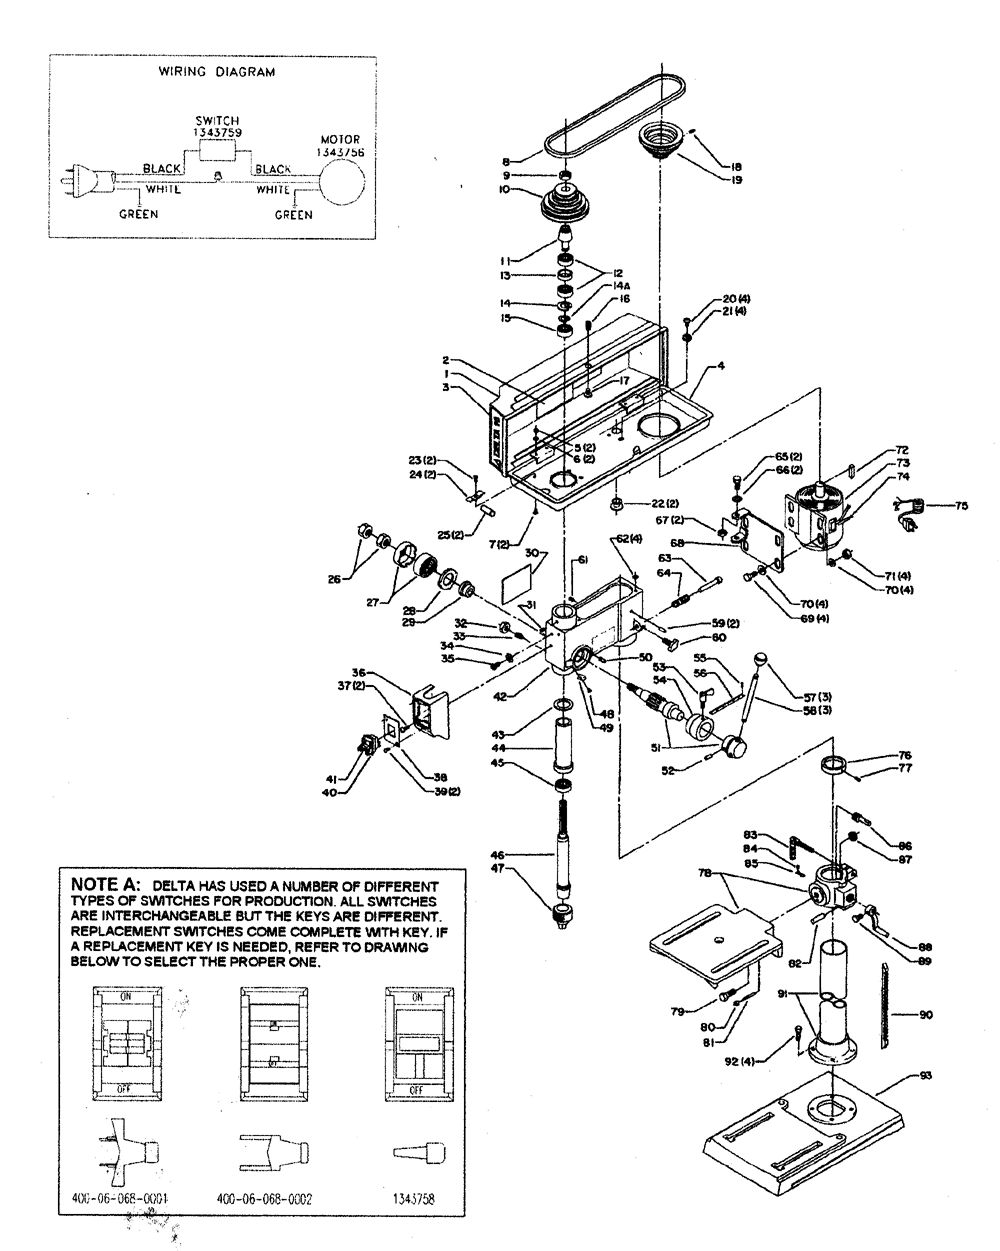 wiring diagram for delta drill press electrical